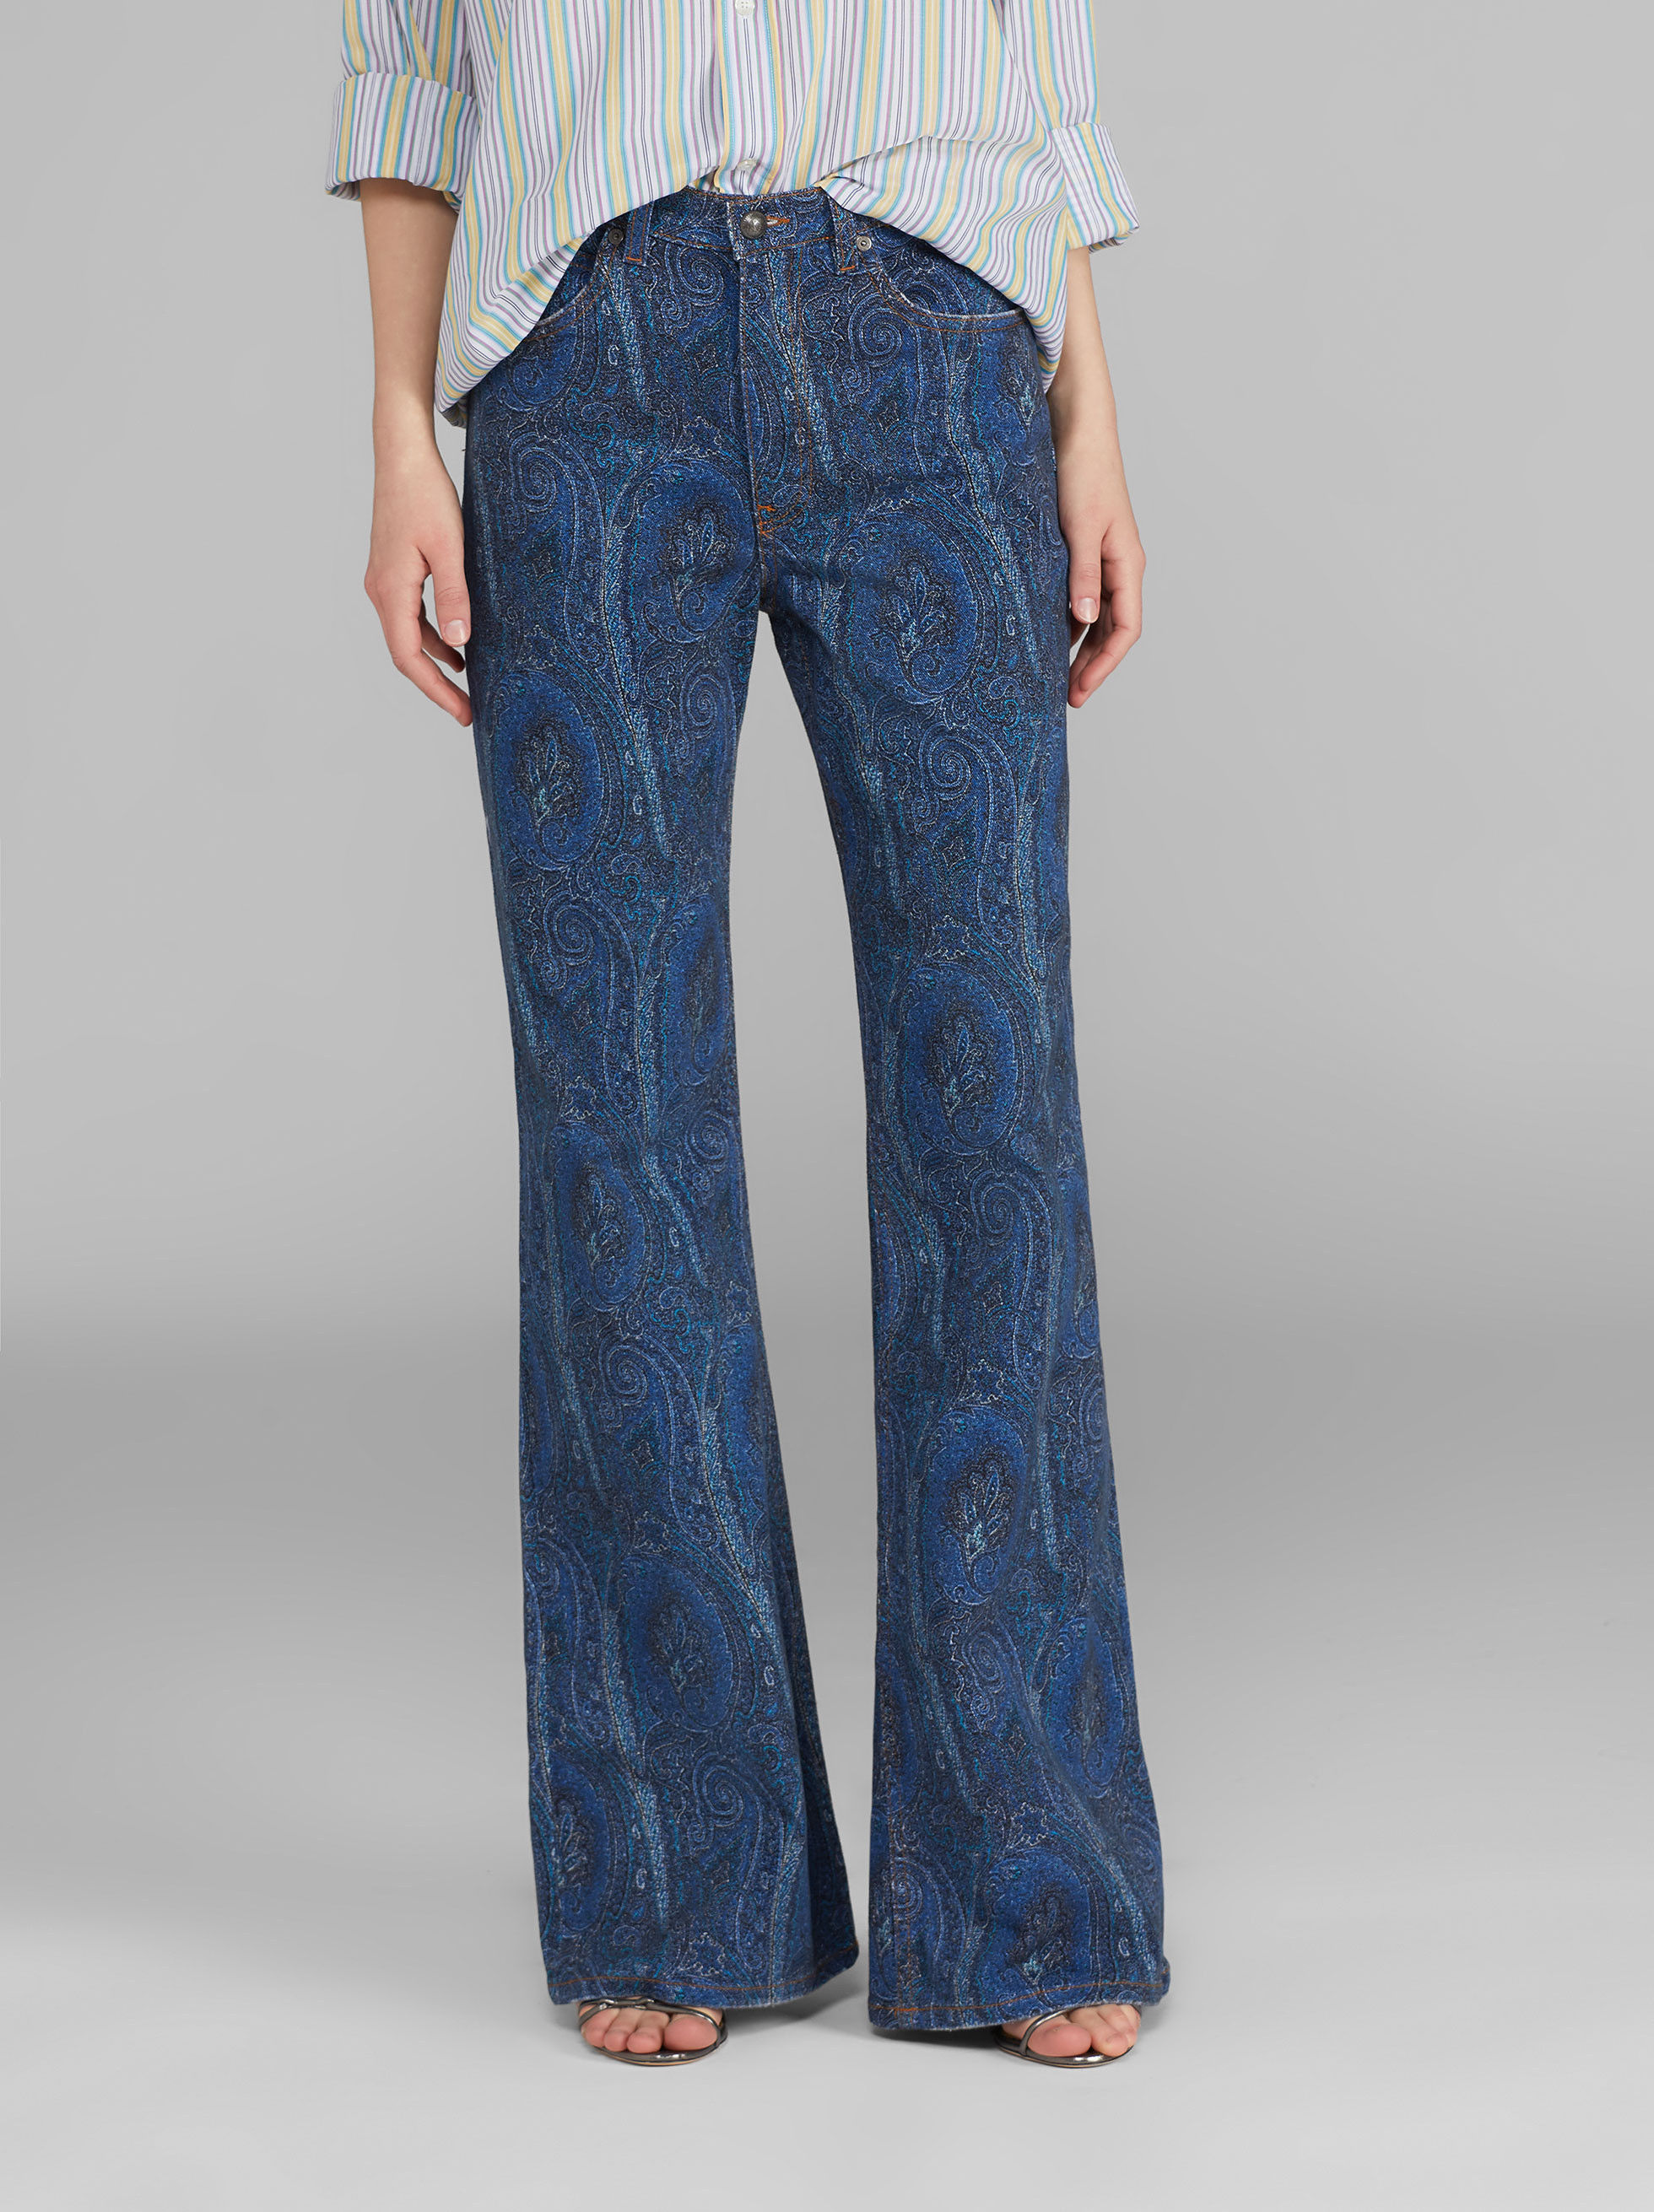 FLARED JEANS WITH PAISLEY PRINT